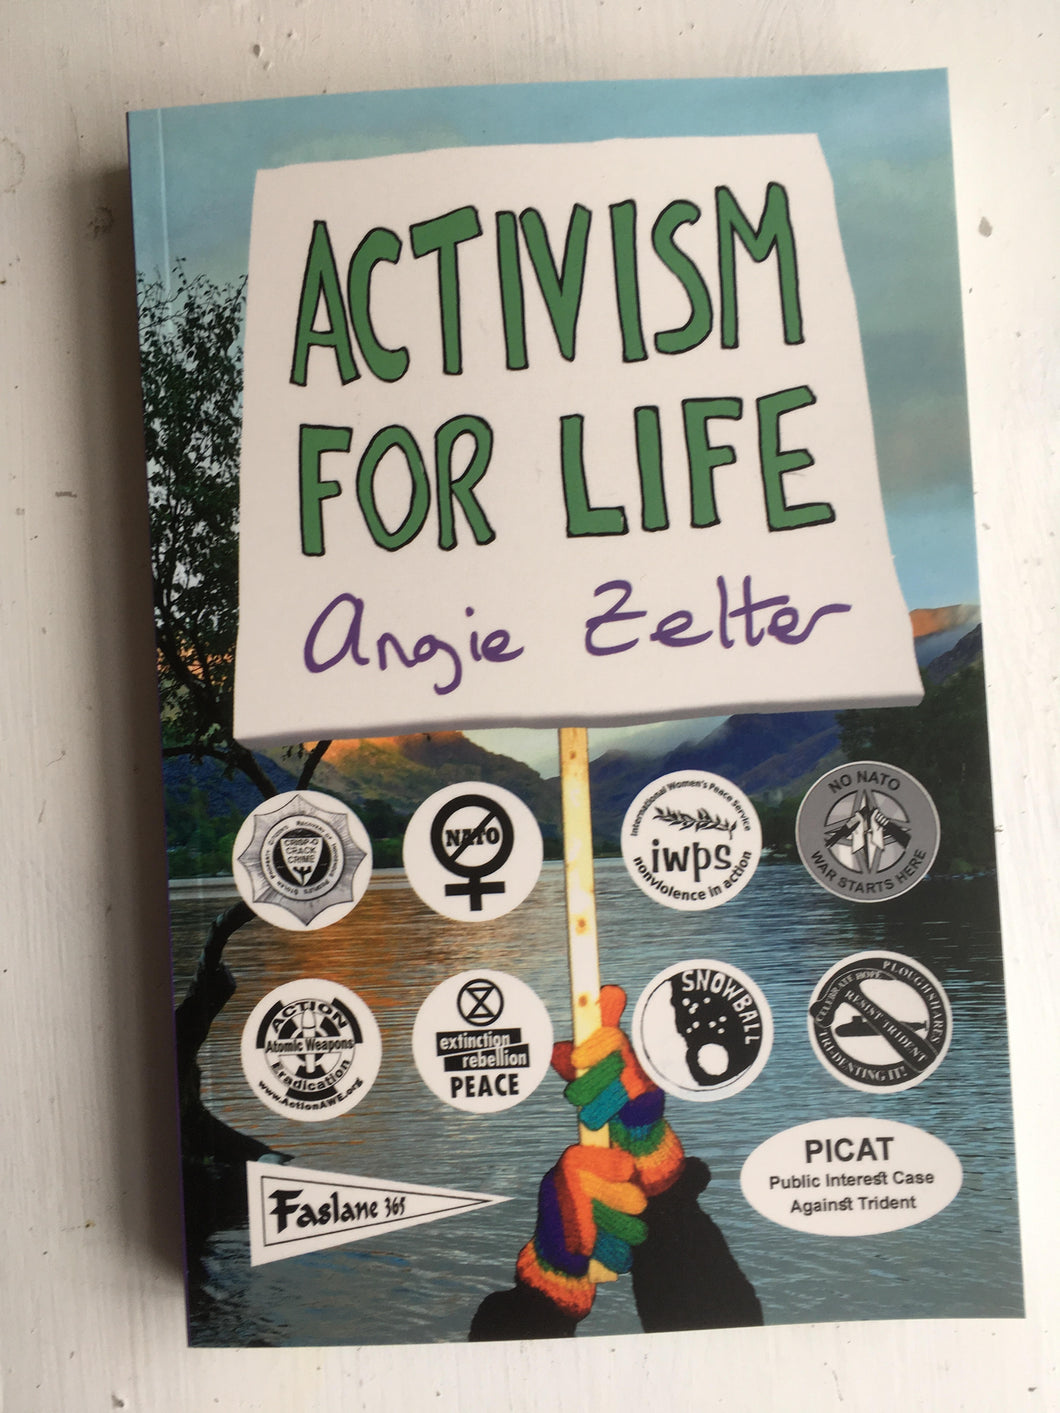 Activism for life by Angie Zelter